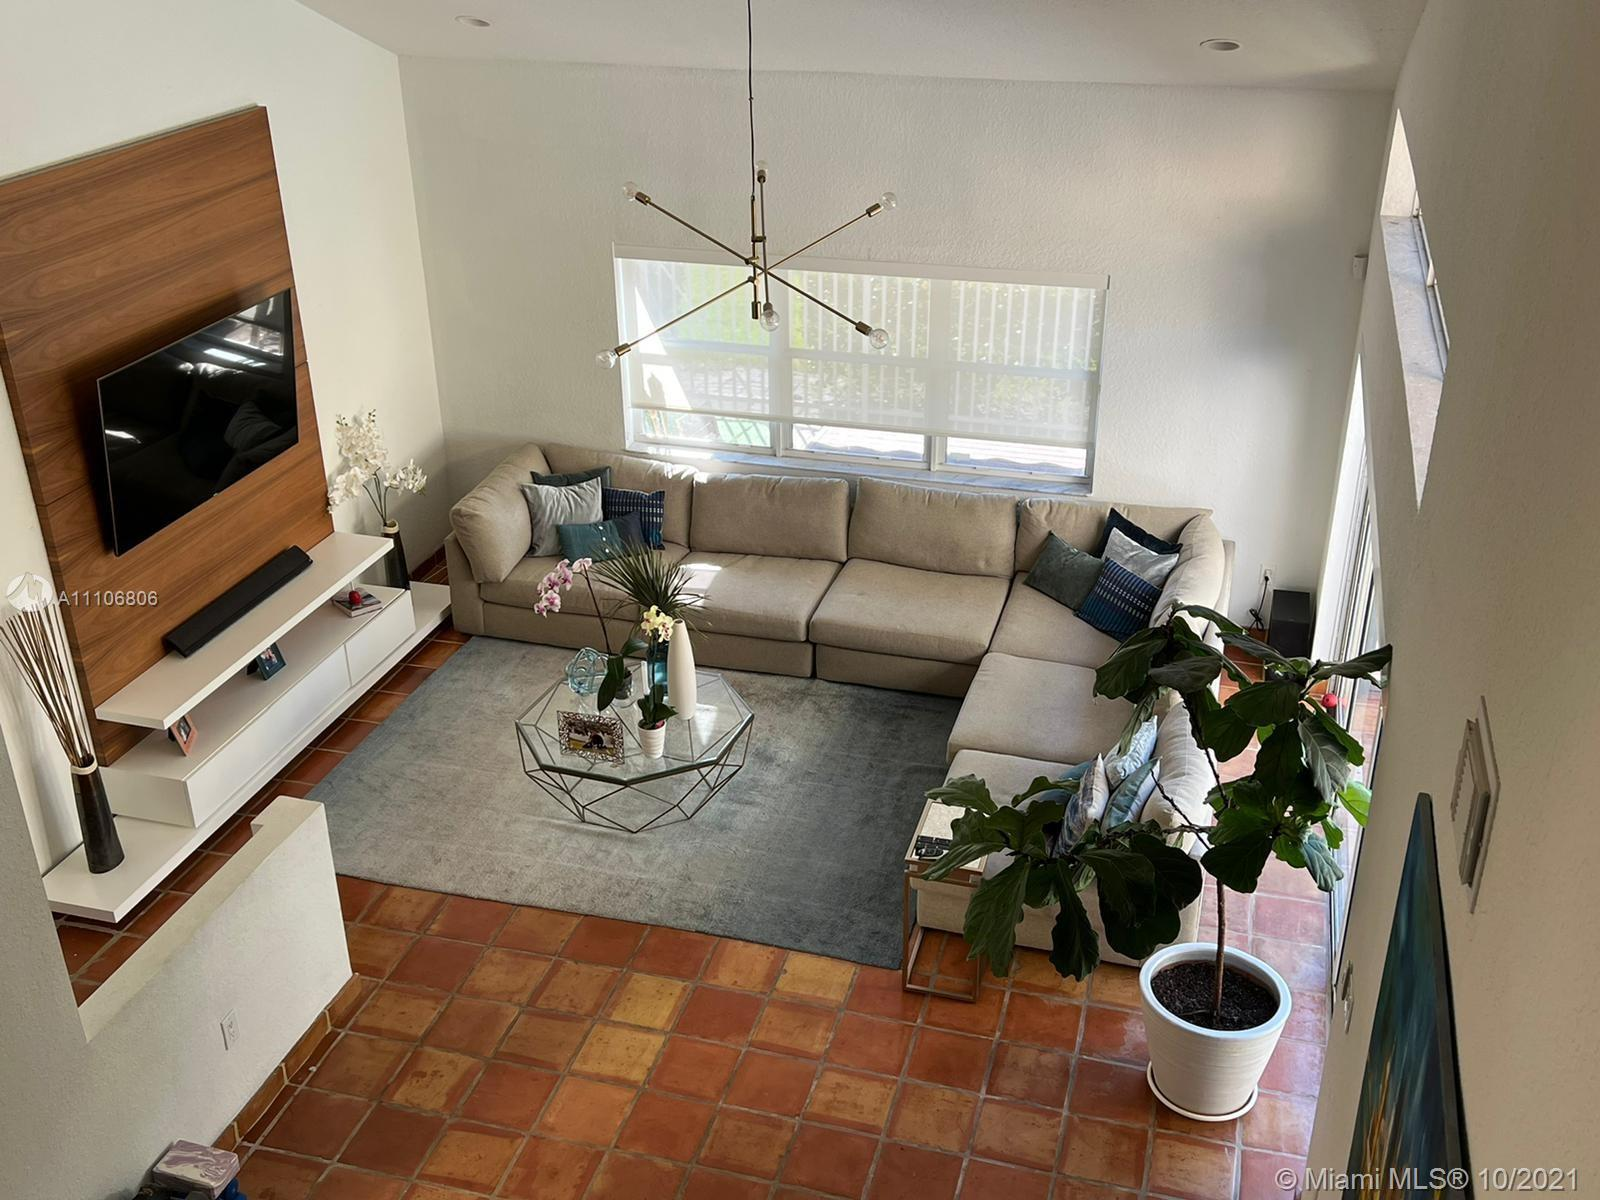 Remodeled! Safe neighborhood, private pool and central location.